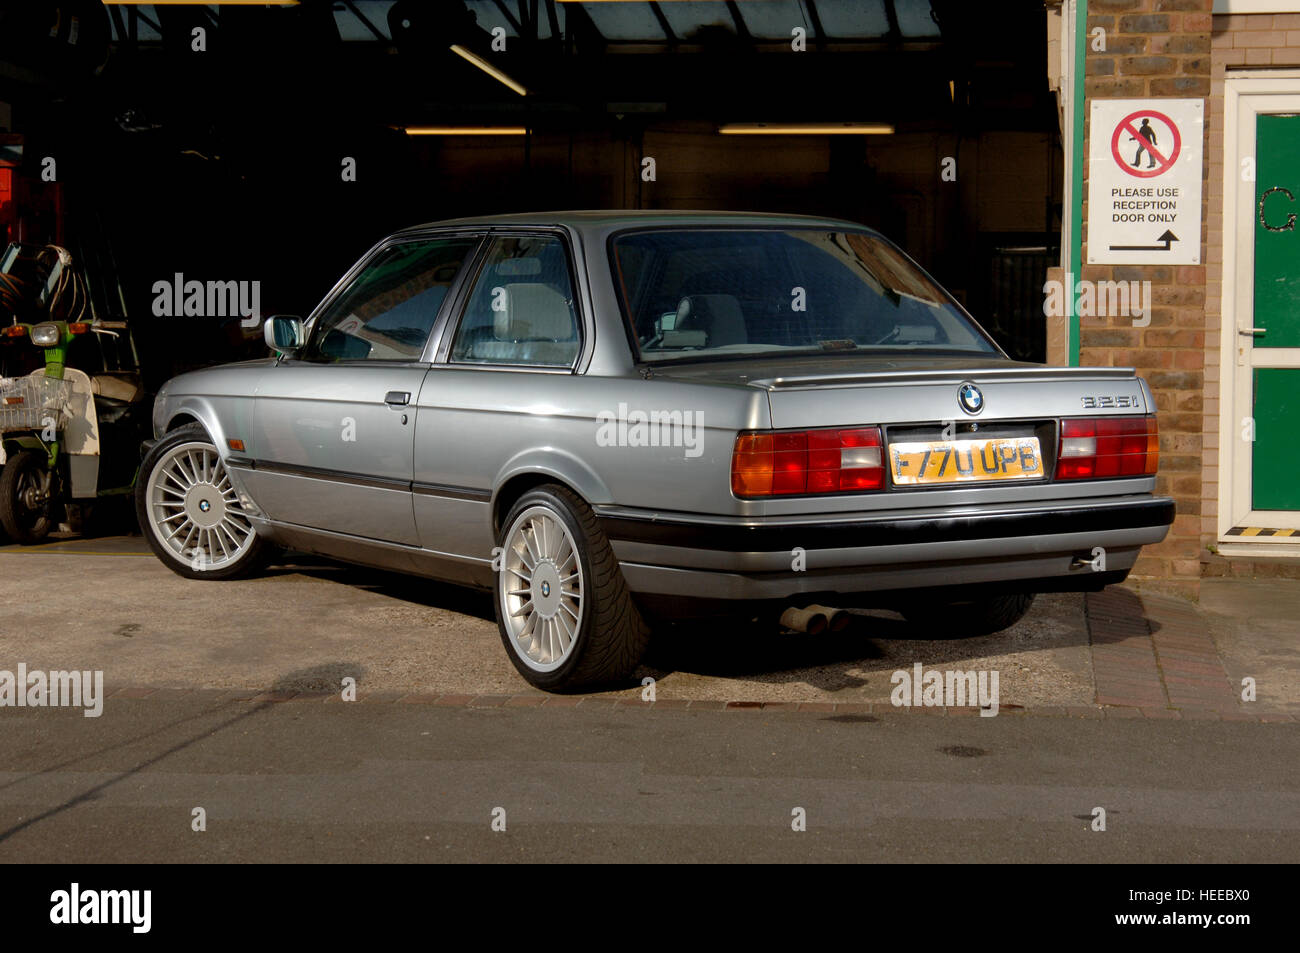 Bmw 325i High Resolution Stock Photography And Images Alamy